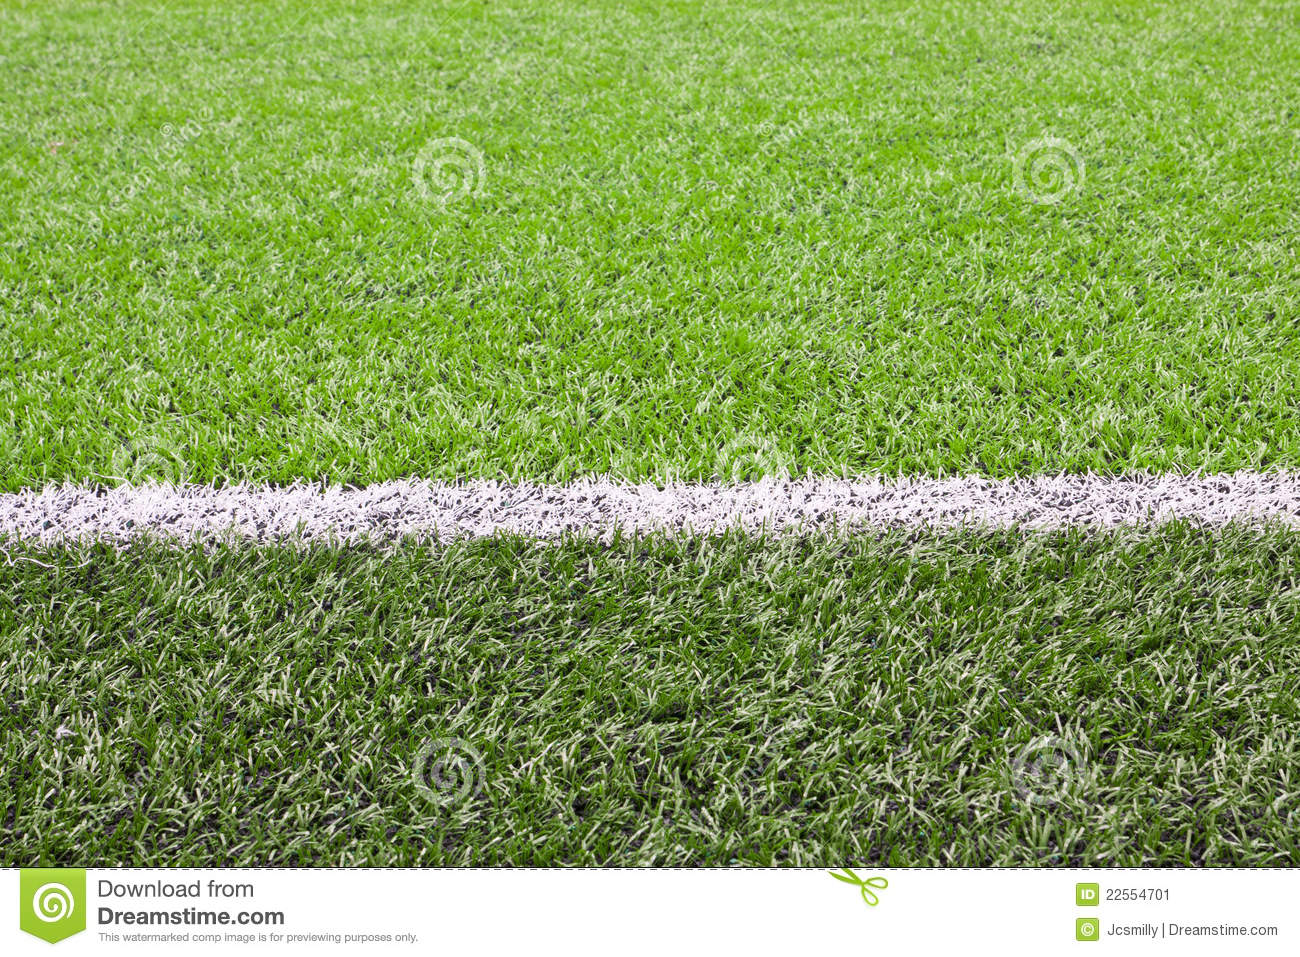 how to build a grass soccer field